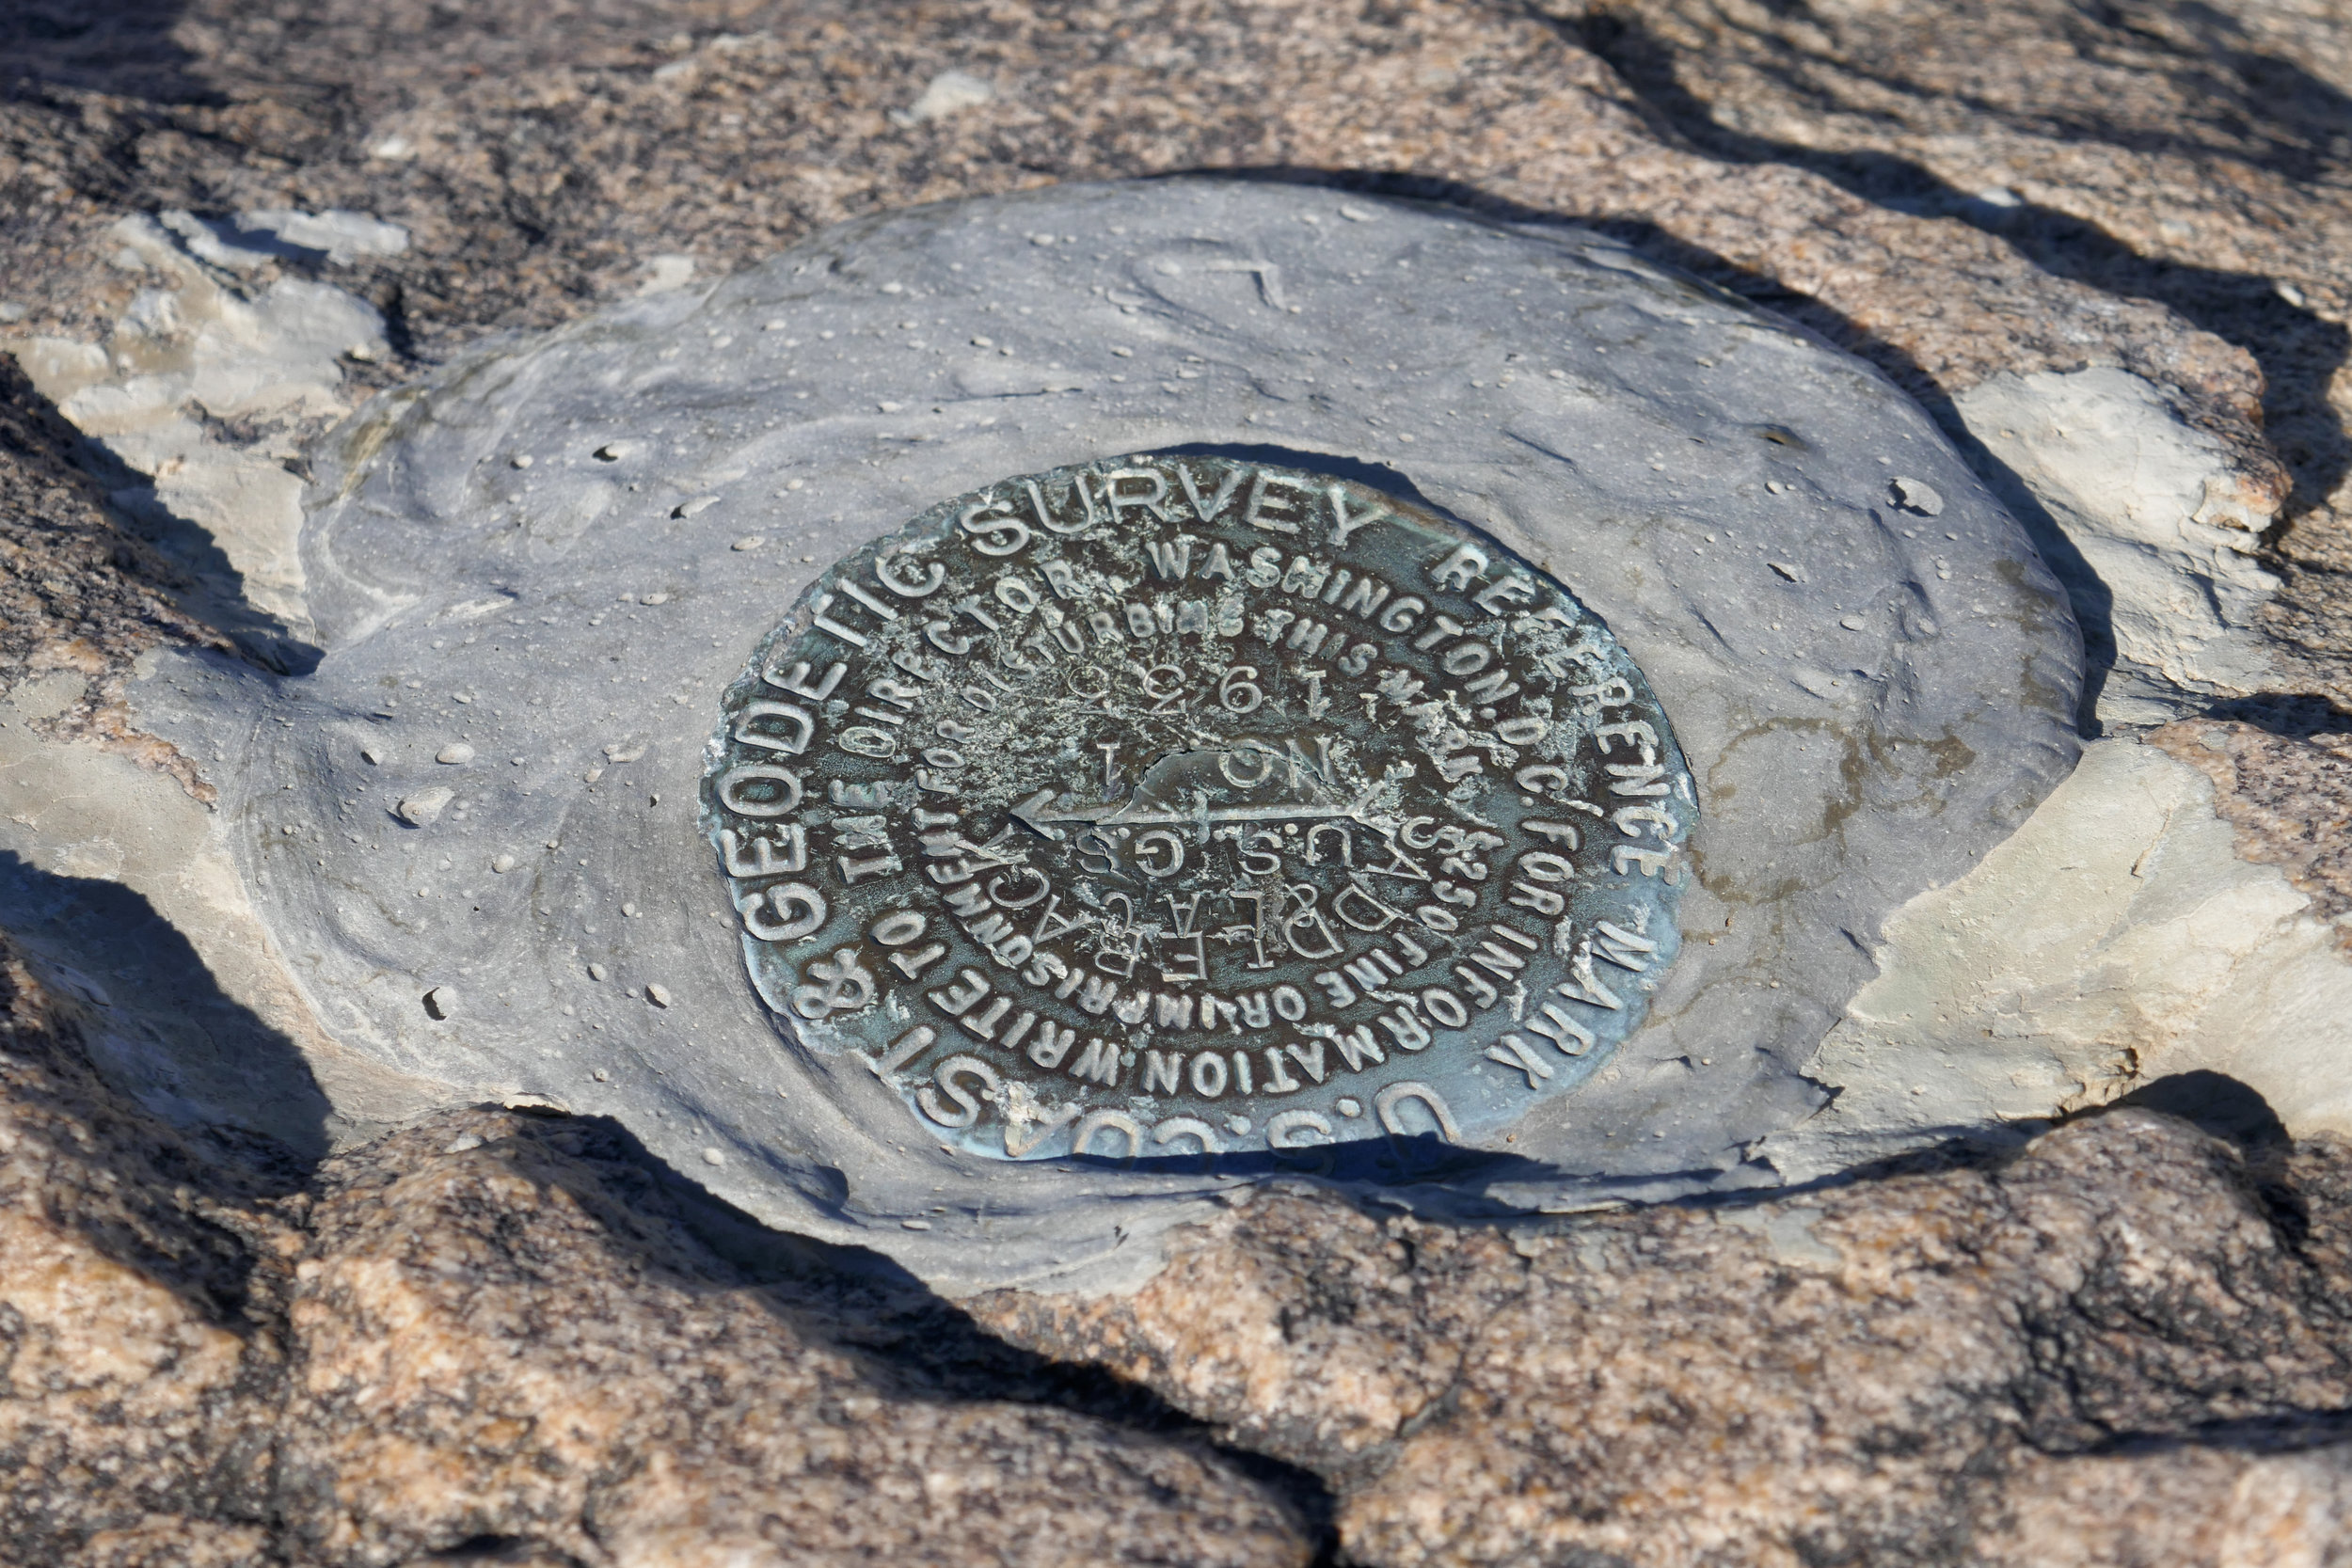 The second USGS marker.